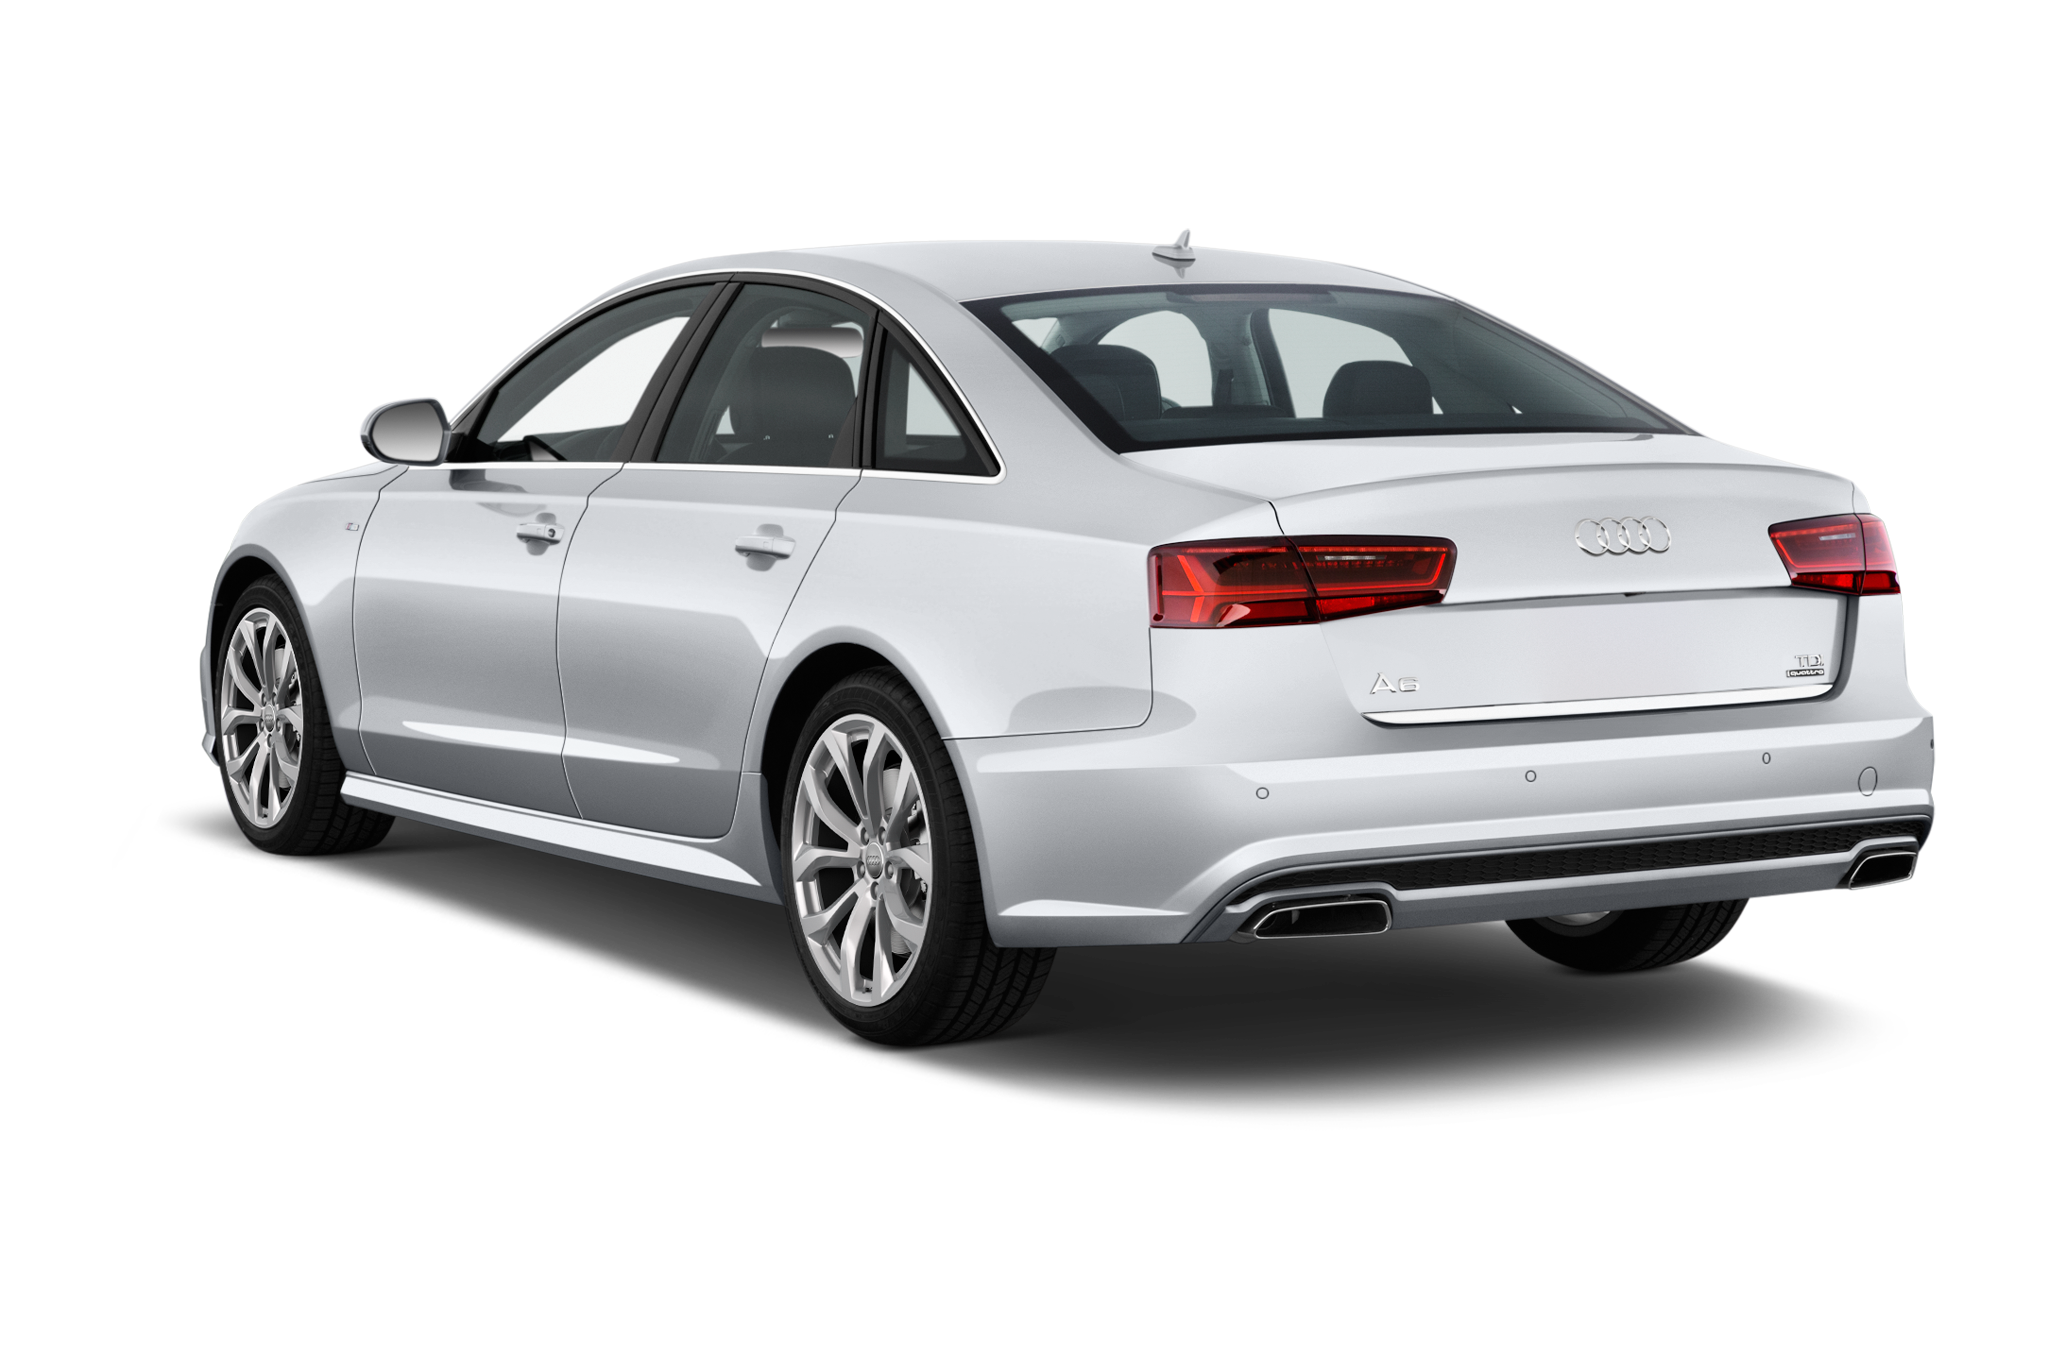 2017 Audi A6 And A7 Gain New Tech And Mild Exterior Styling Tweaks Automobile Magazine